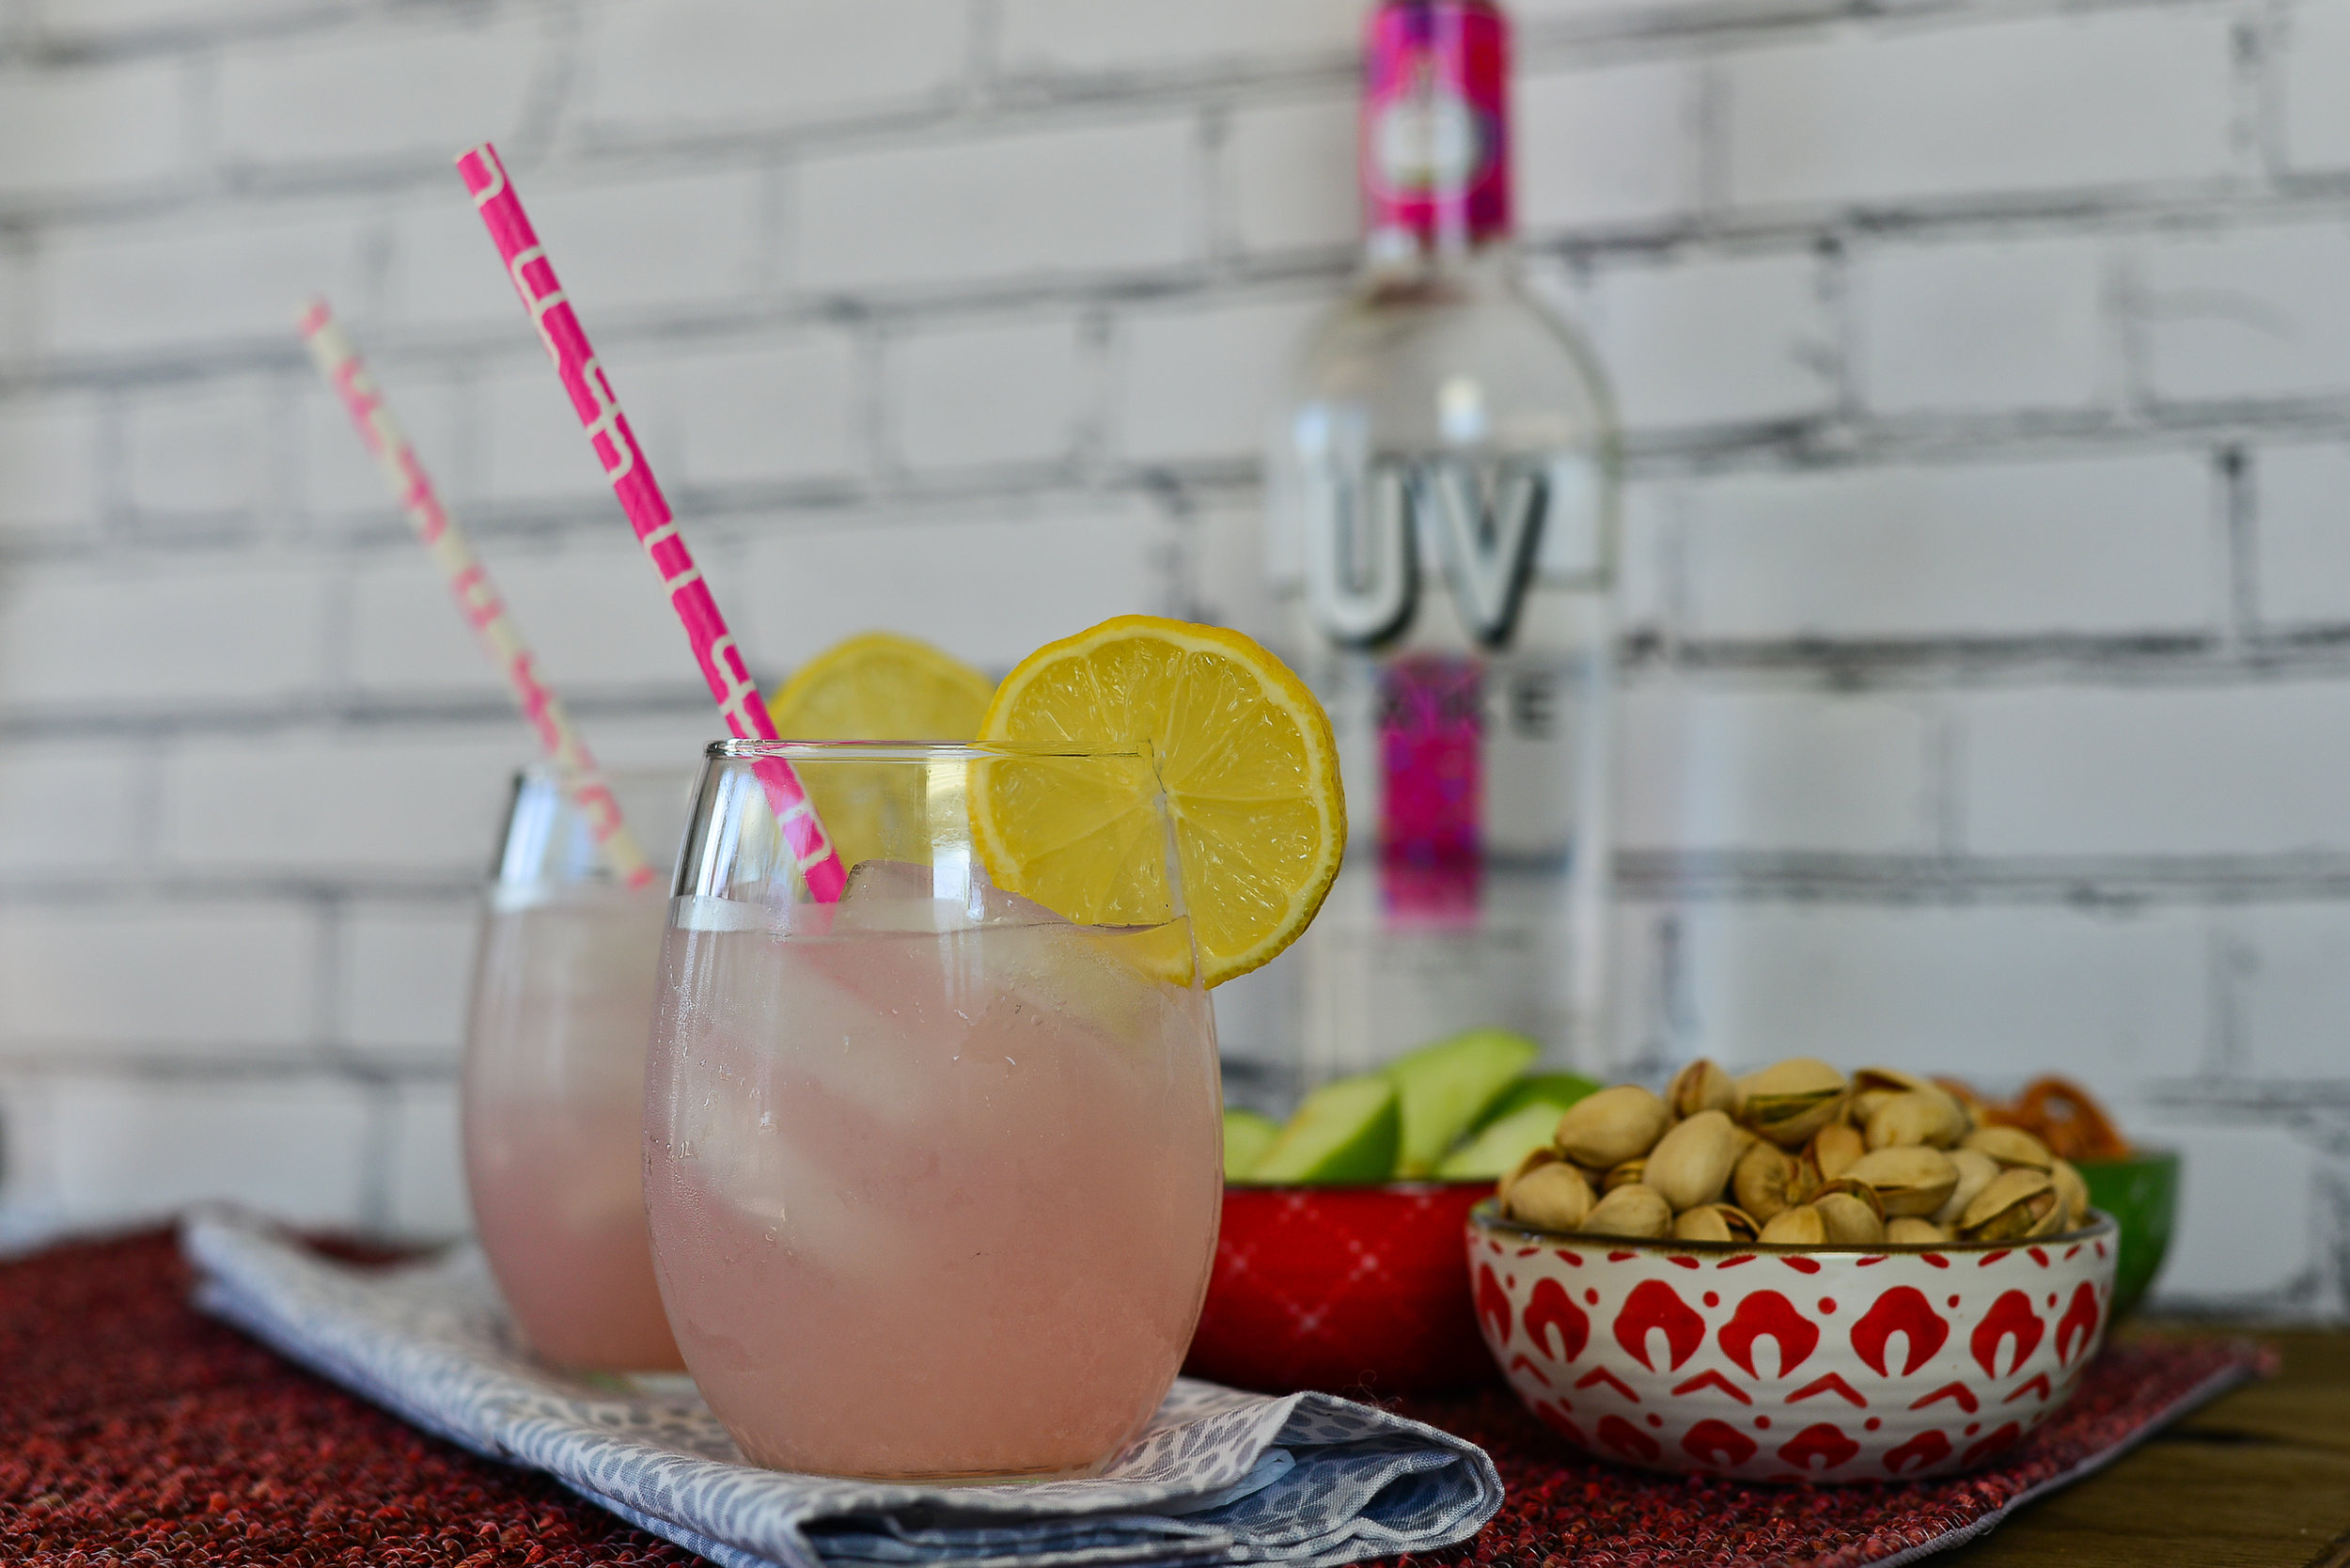 Boozy Pink Lemonade: for the punch-loving game watcher.